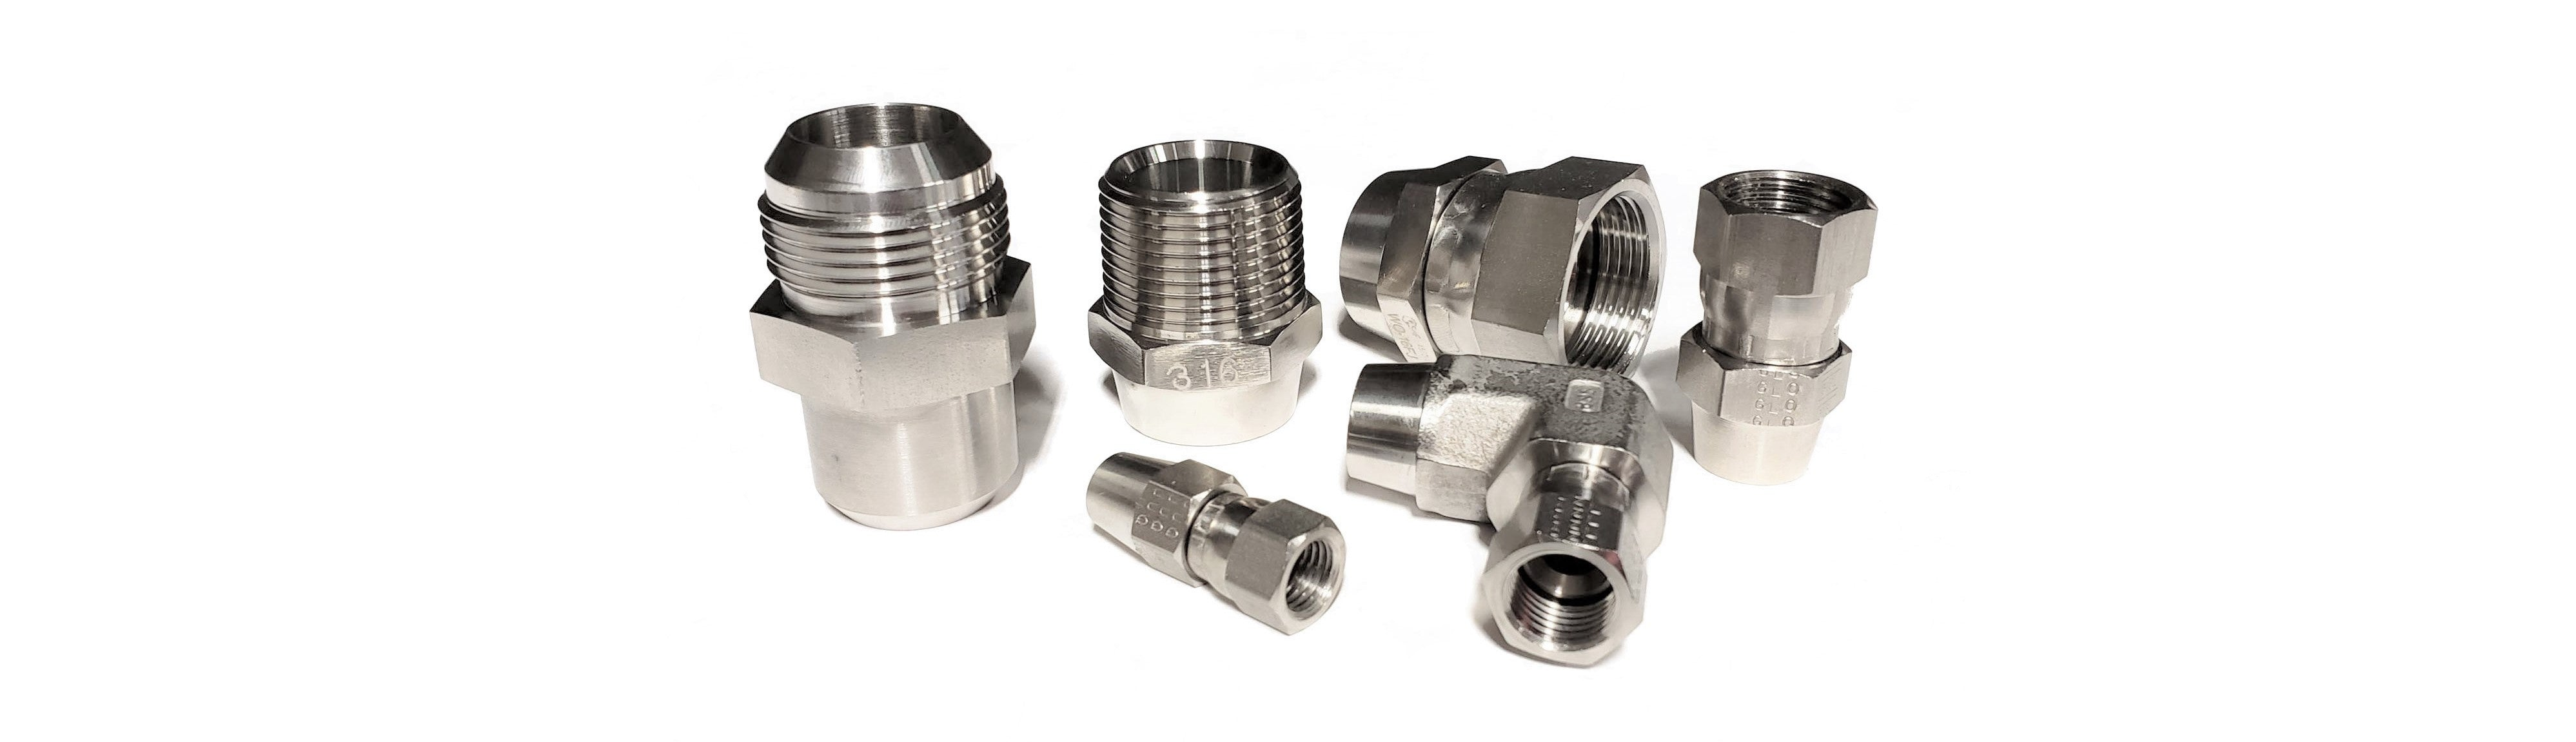 Hydraulic Fittings & Adapters - JIC, NPT, 316 Stainless Steel